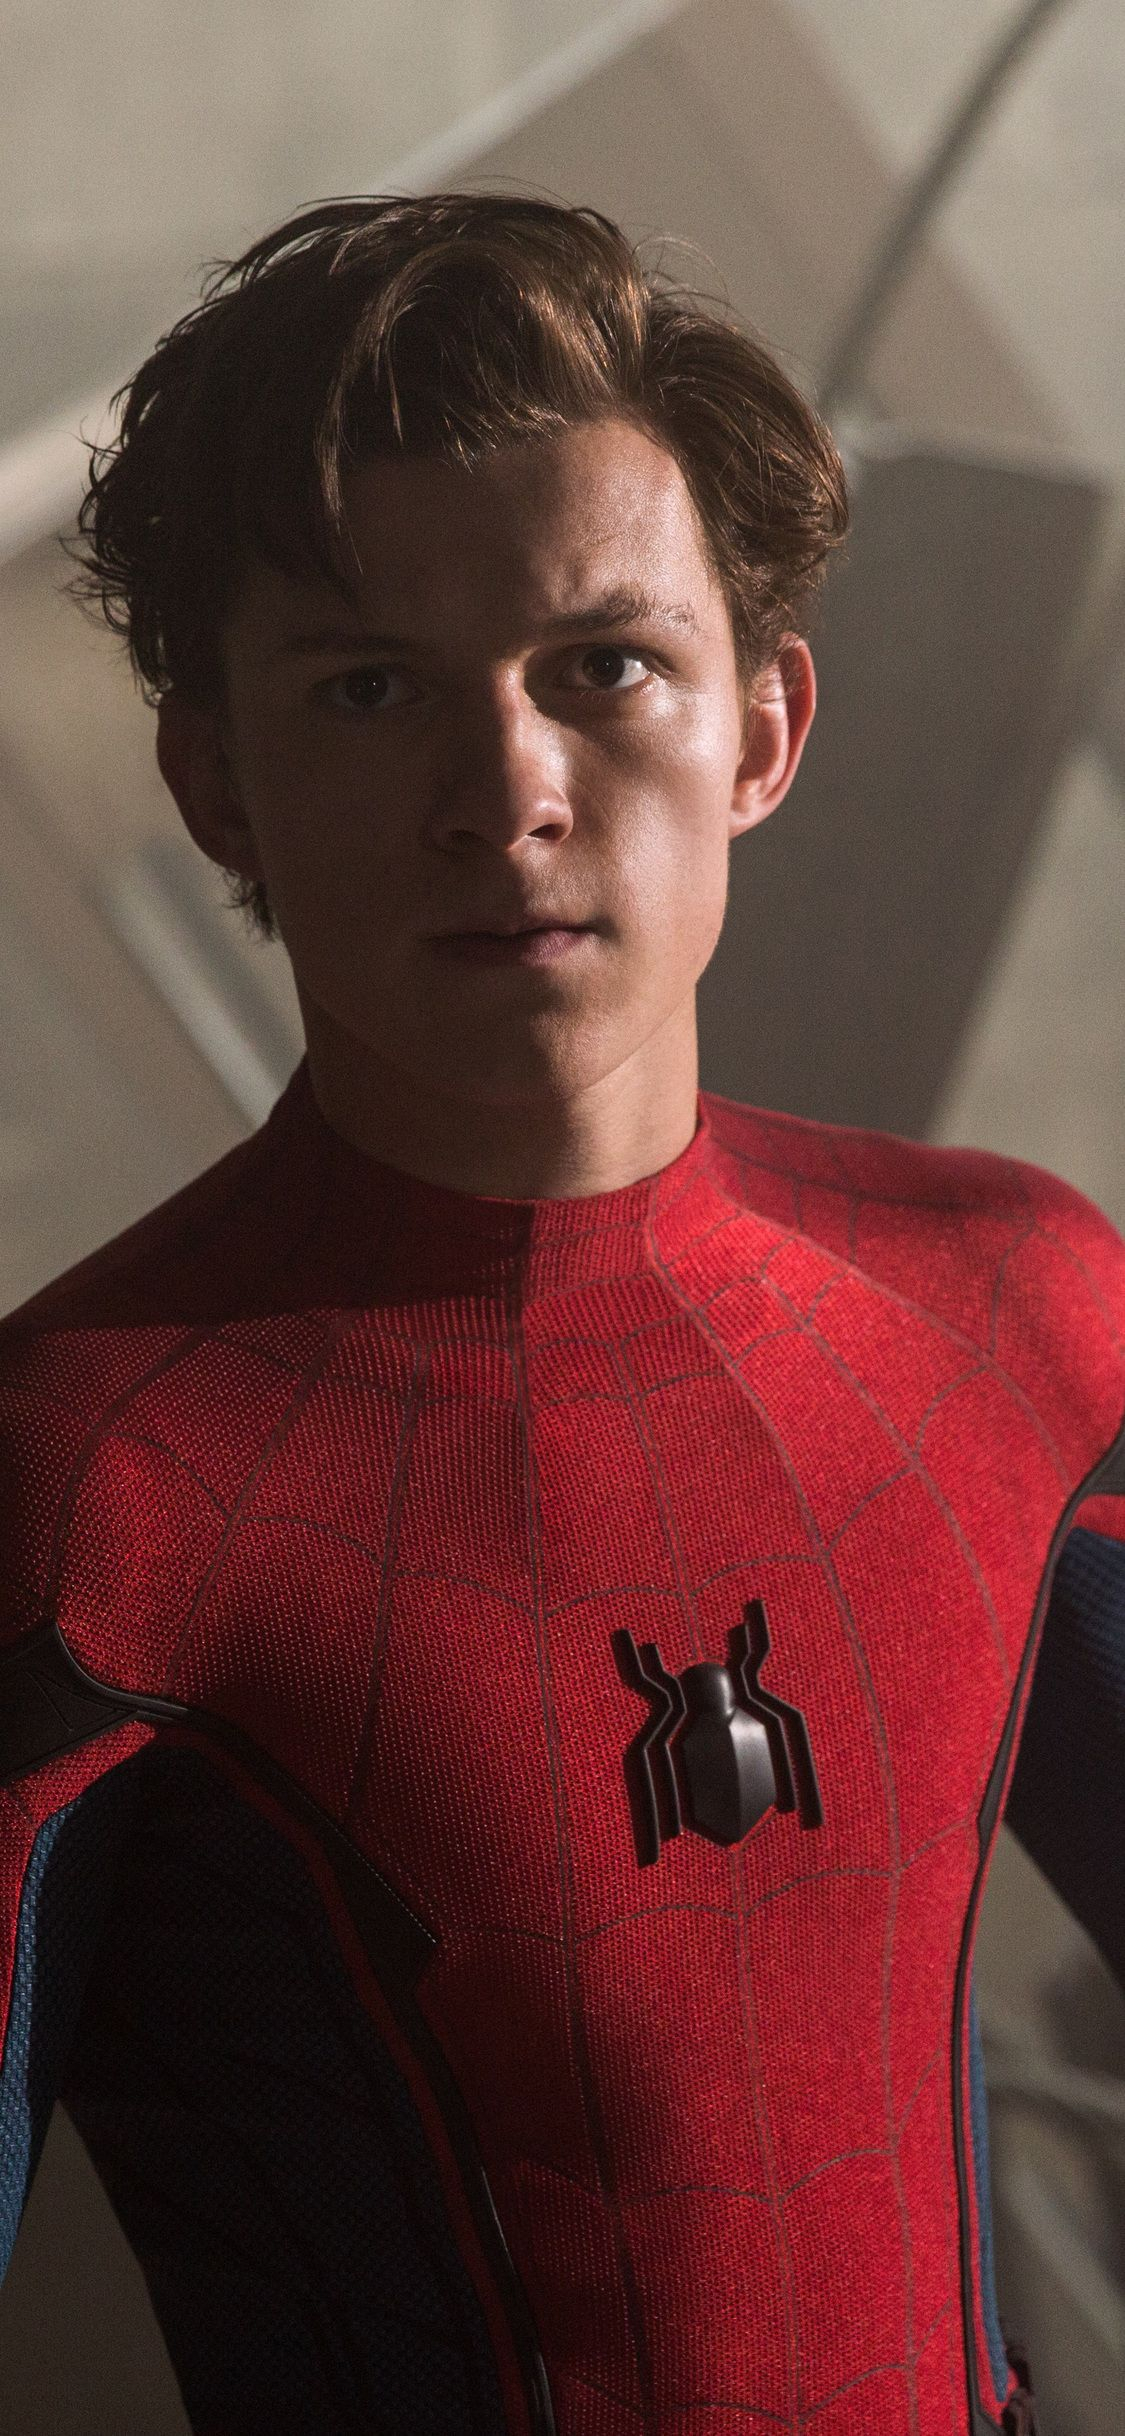 Tom Holland In Spiderman Home ing 5k Wallpapers